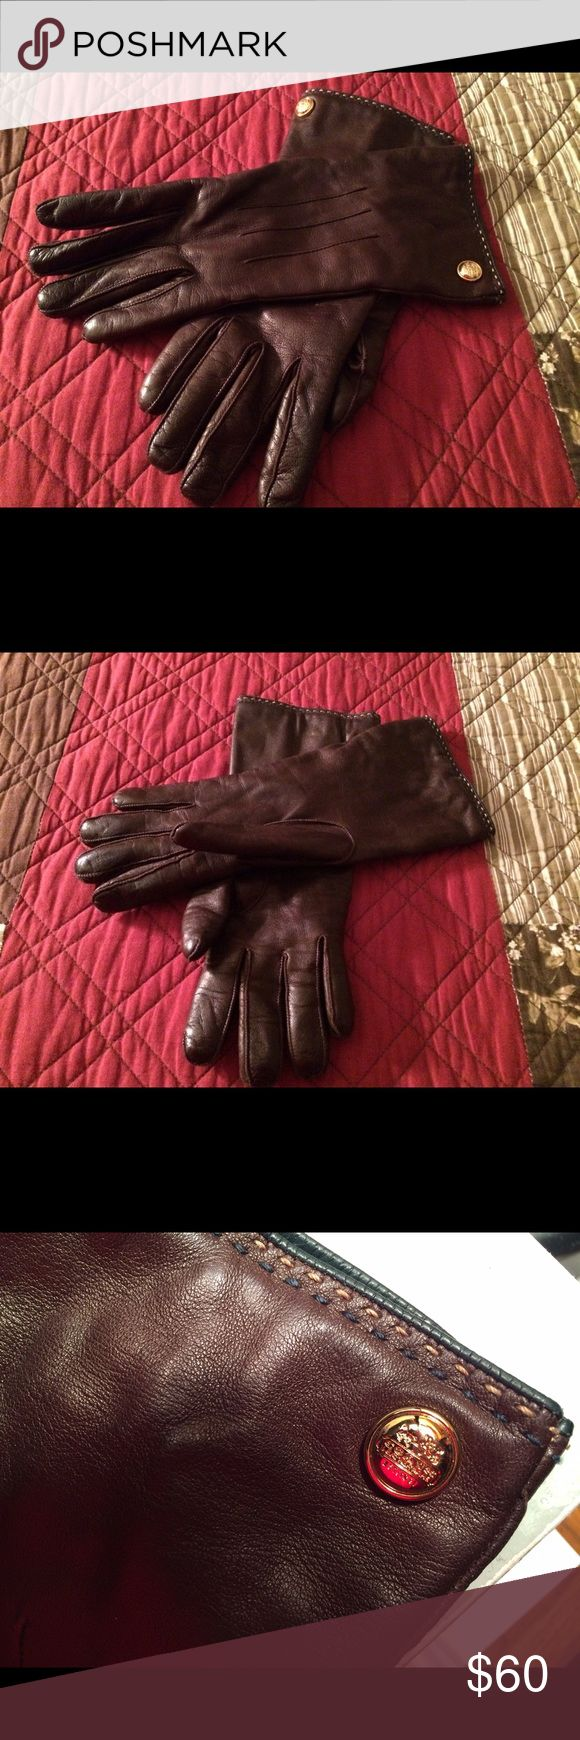 Black leather gloves with red buttons - Coach Brown Leather Gloves New Listing These Gloves May Have Been Used Once Or Twice